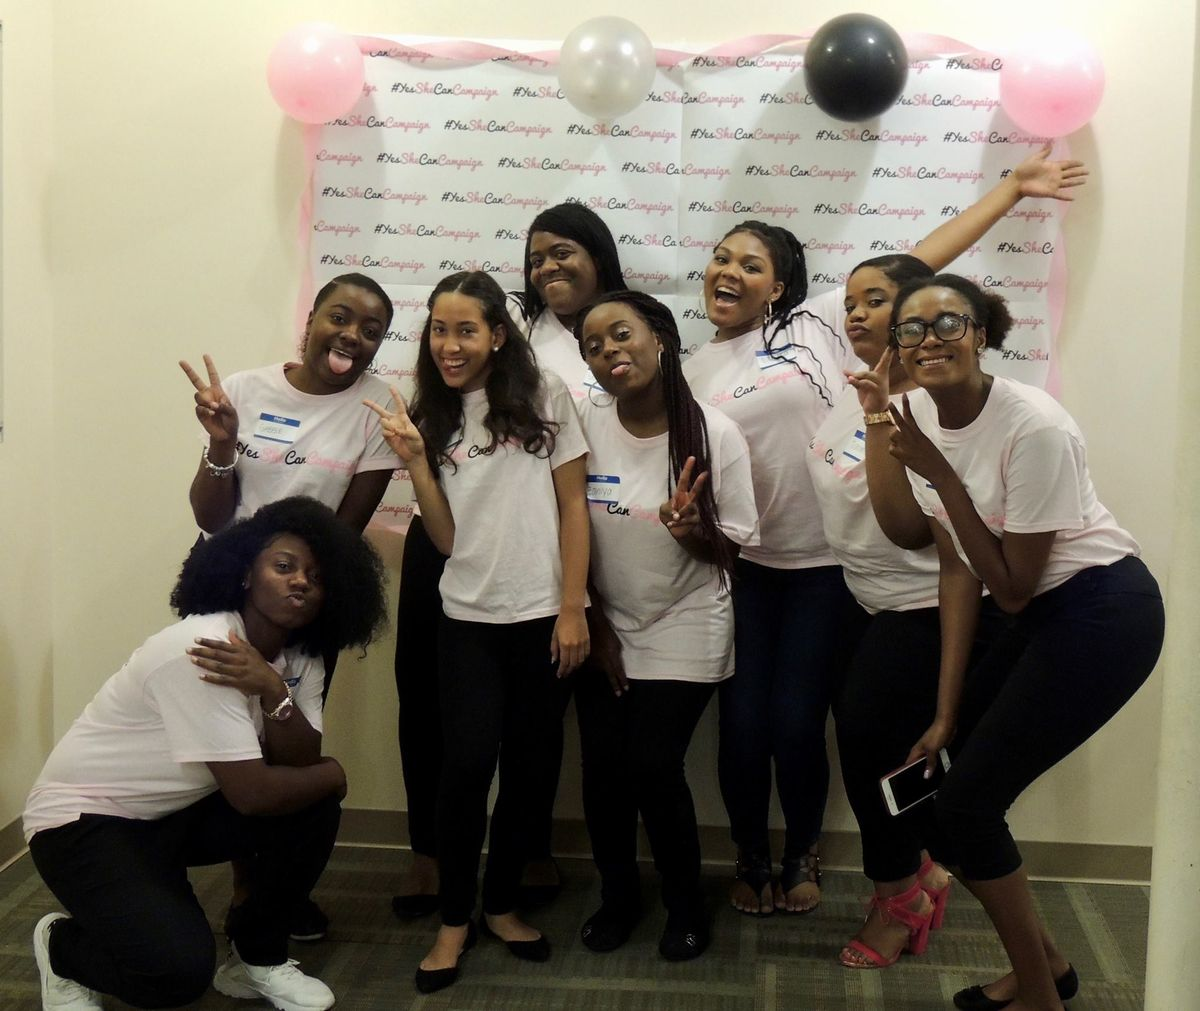 Youth-Led Organization: The Yes She Can Campaign